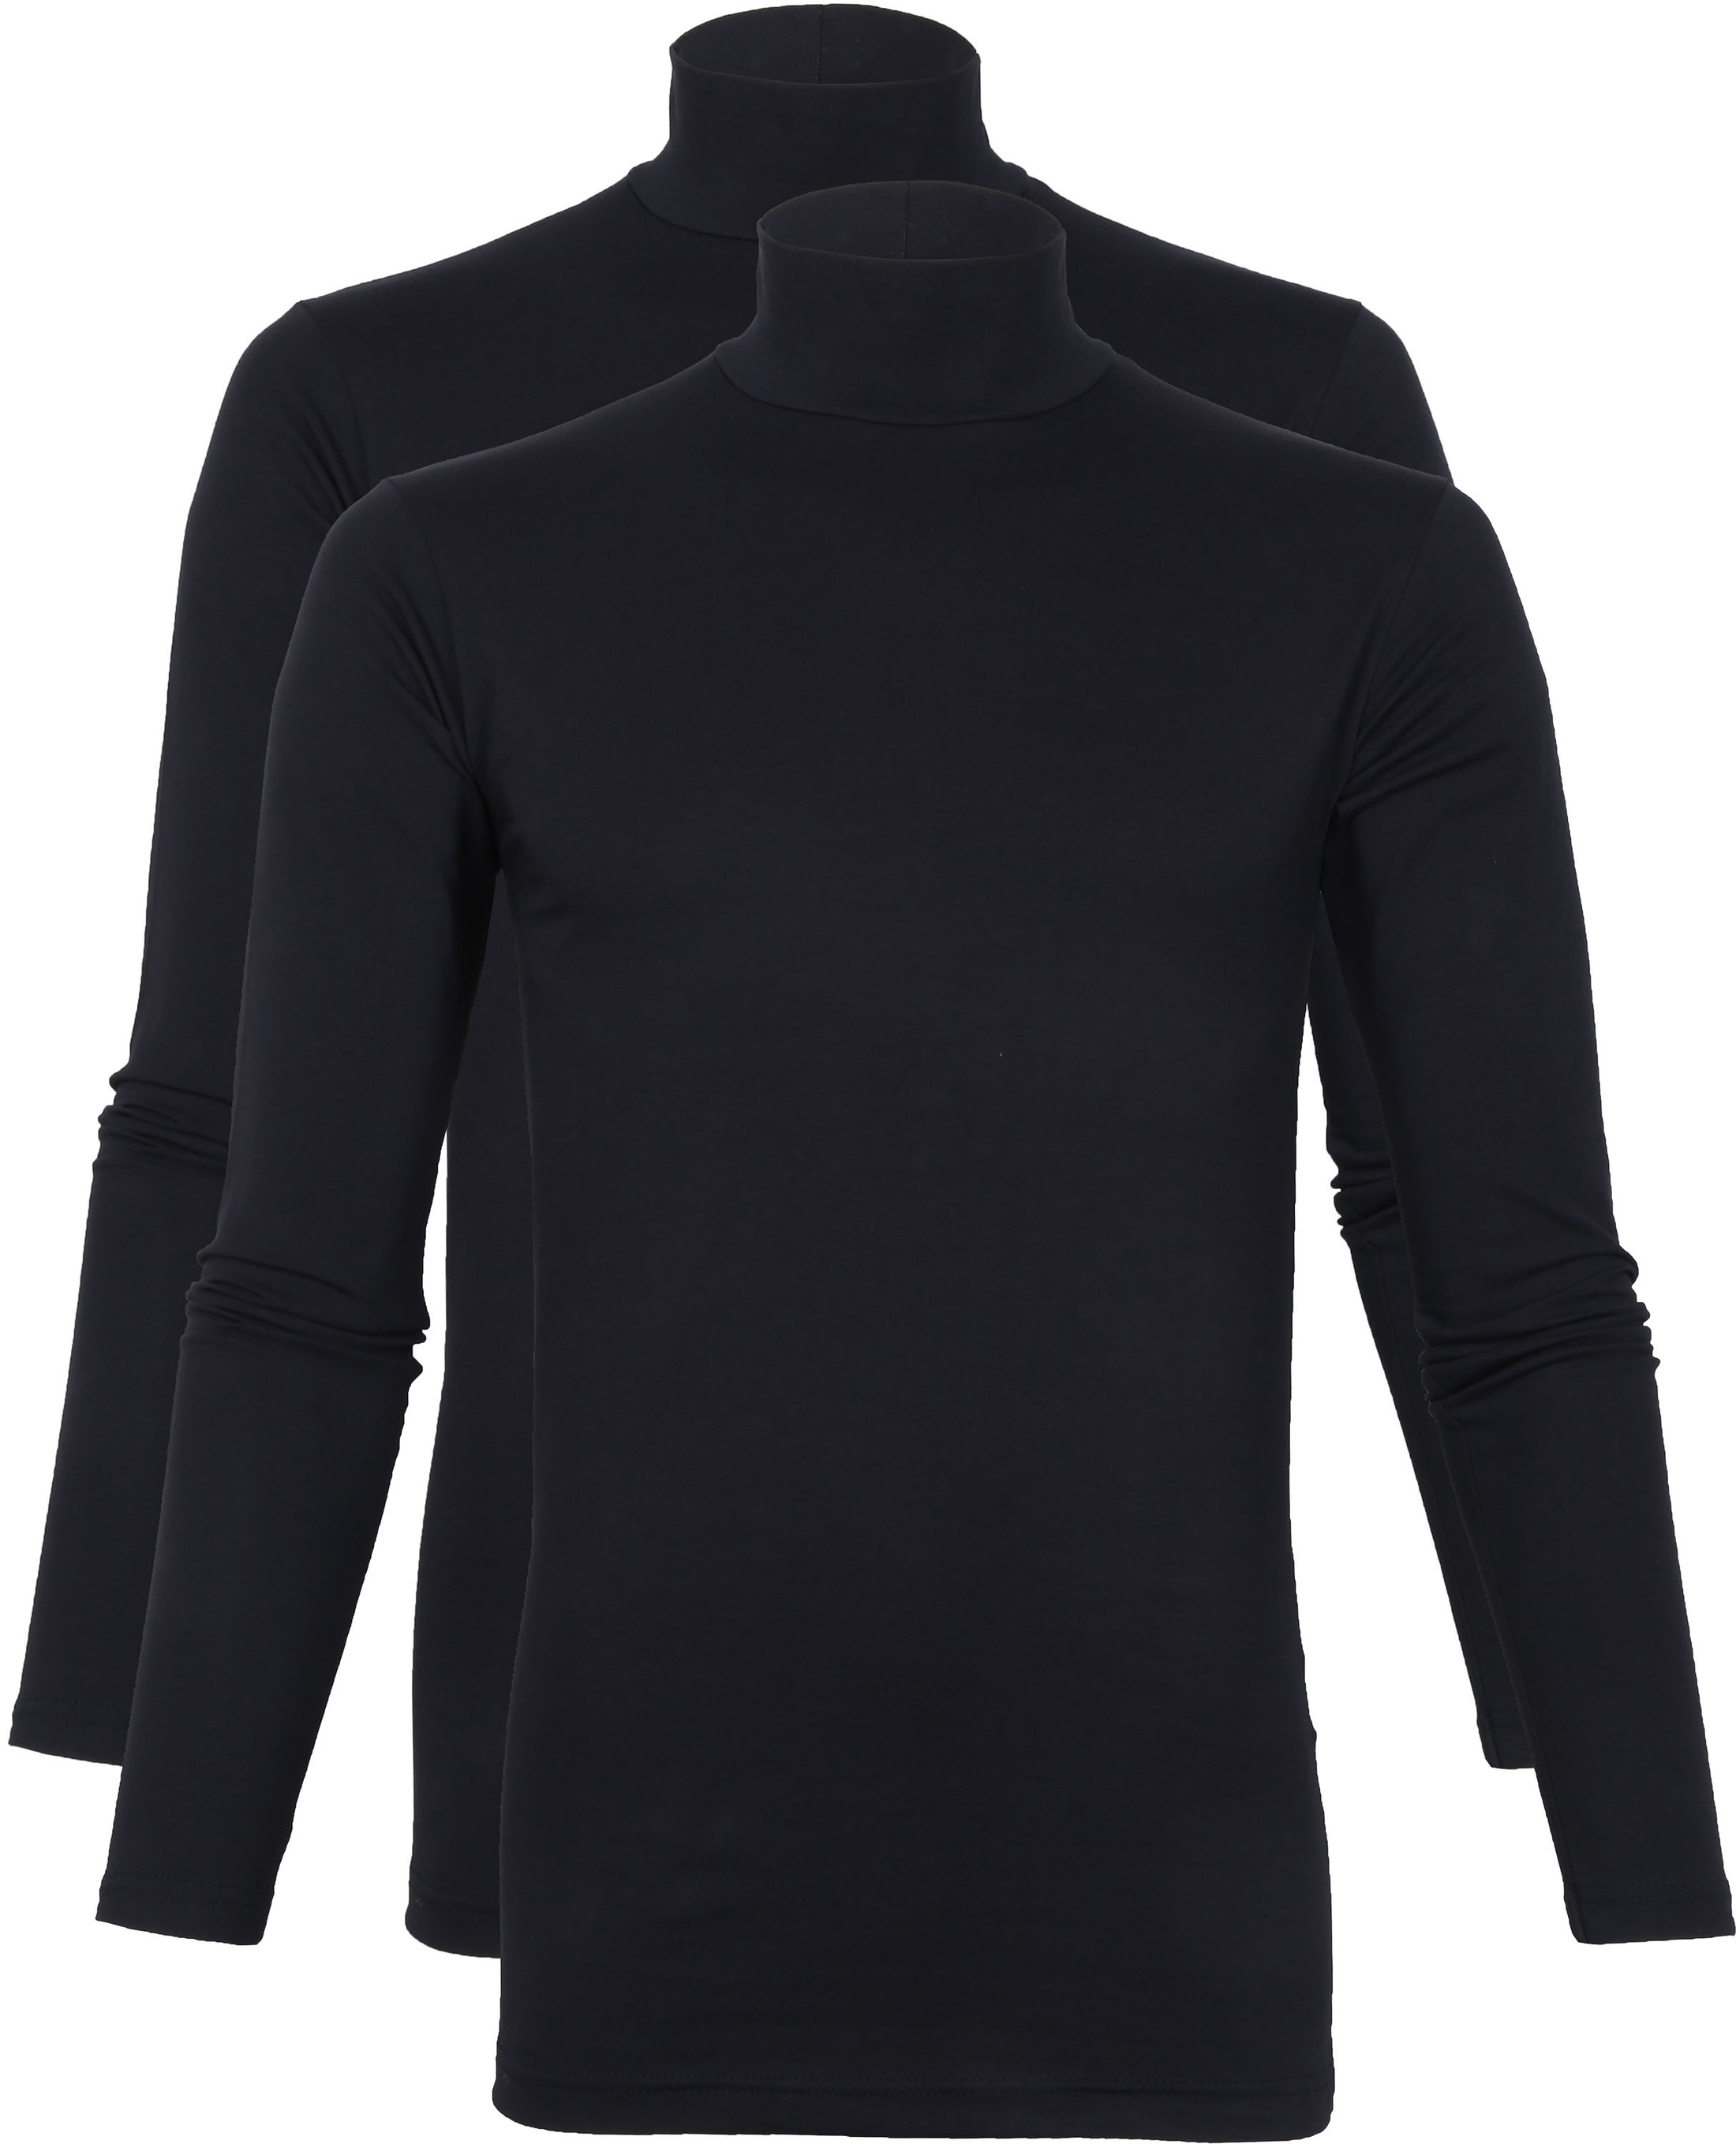 Alan Red Oster Col Longsleeve Shirt Donkerblauw 2-Pack